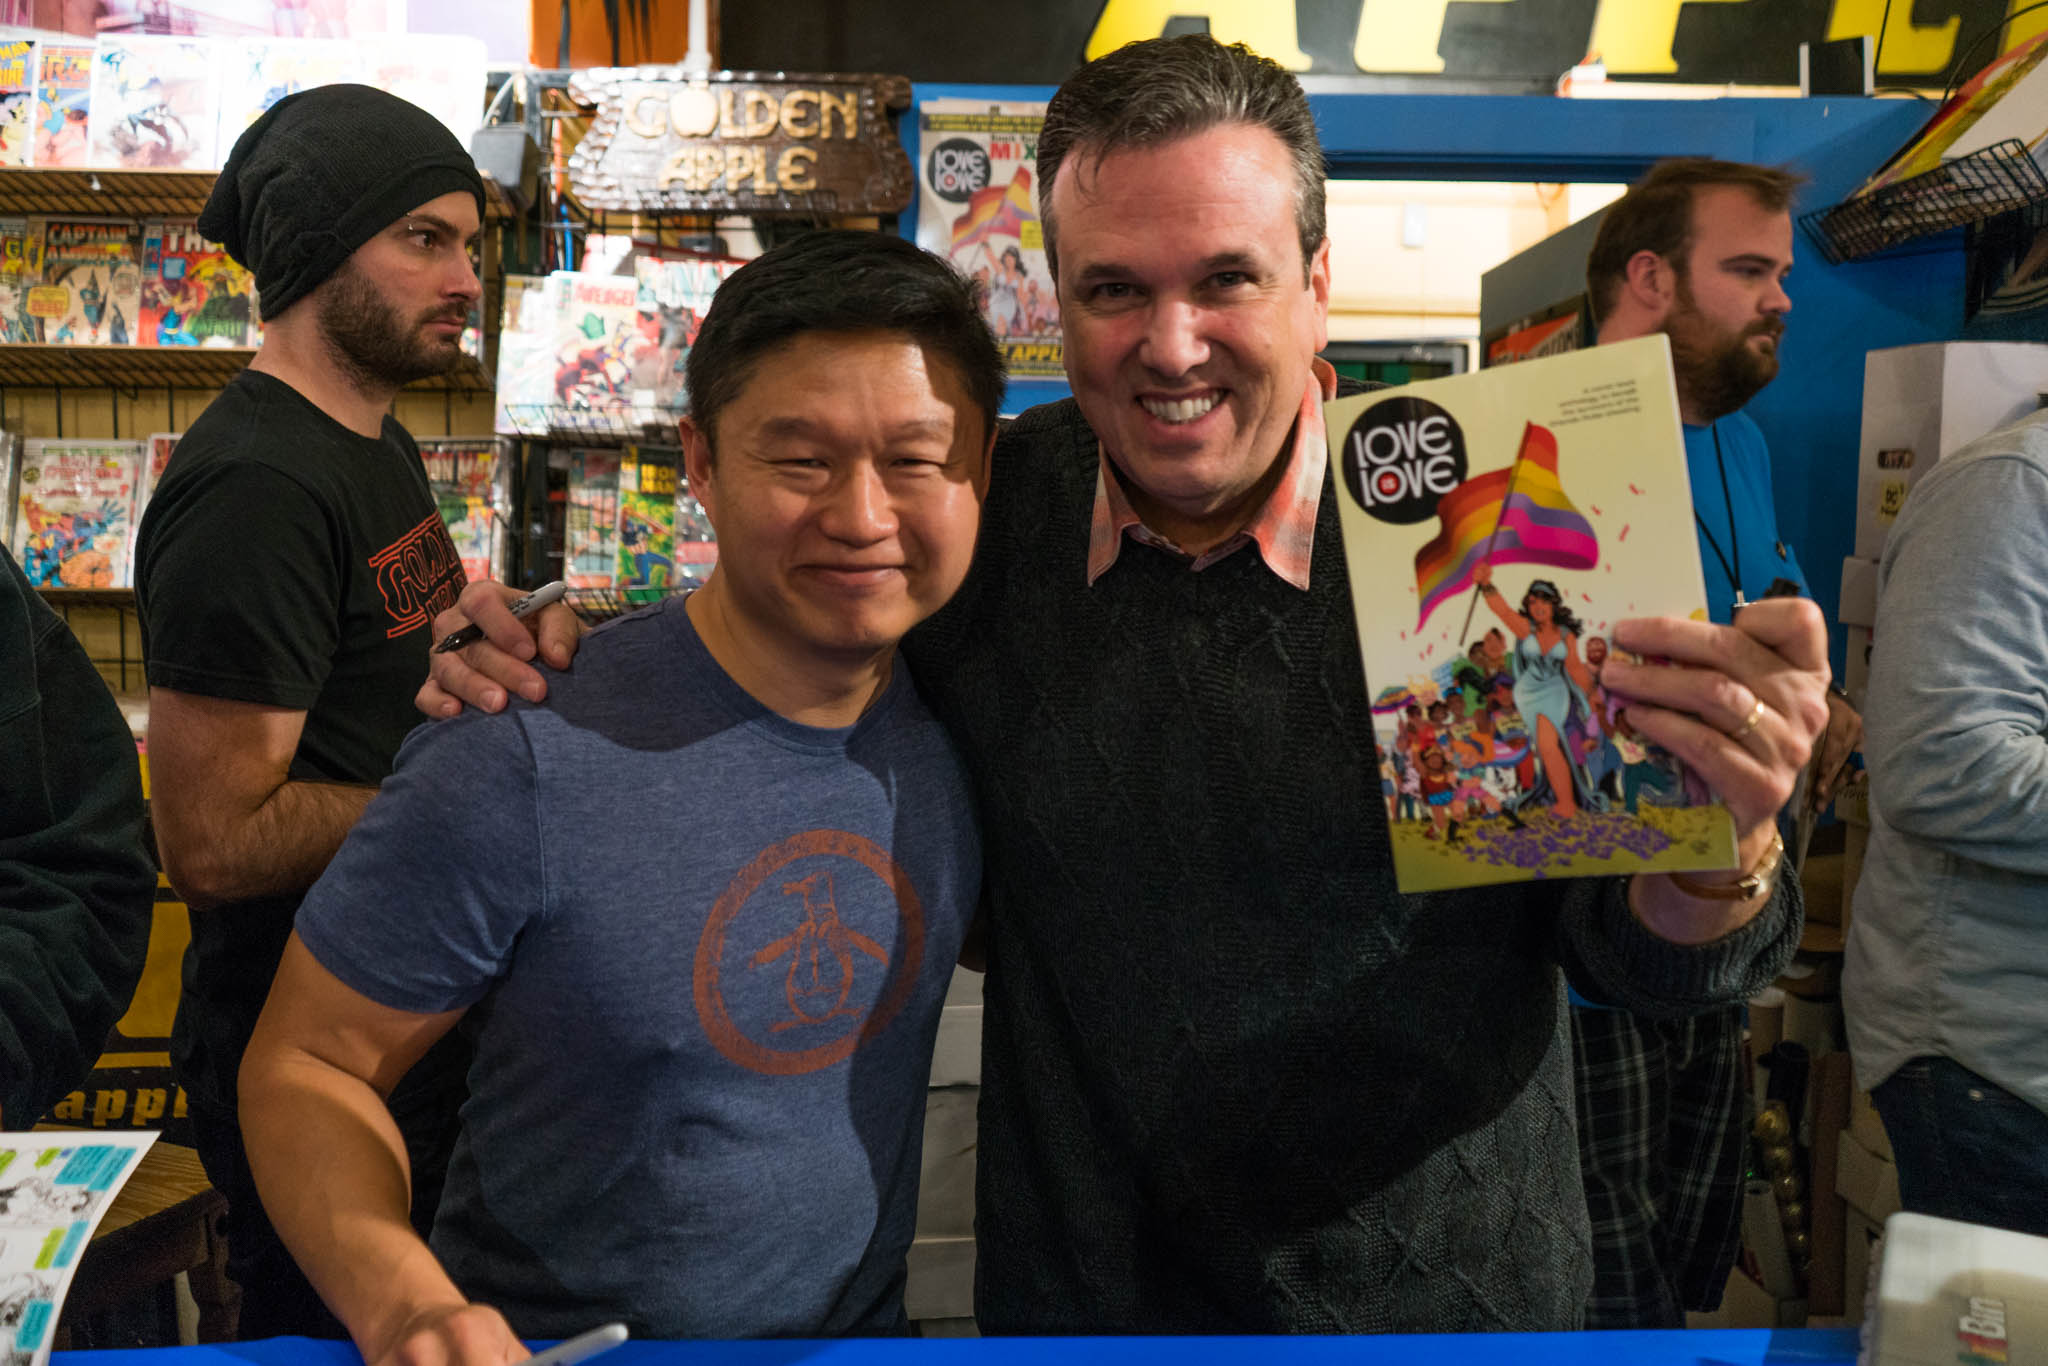 Love Is Love, Golden Apple Comics, Marc Andreyko, DC Comics, IDW Publishing, Crowd, Autograph, Bill Morrison, Chuck Kim